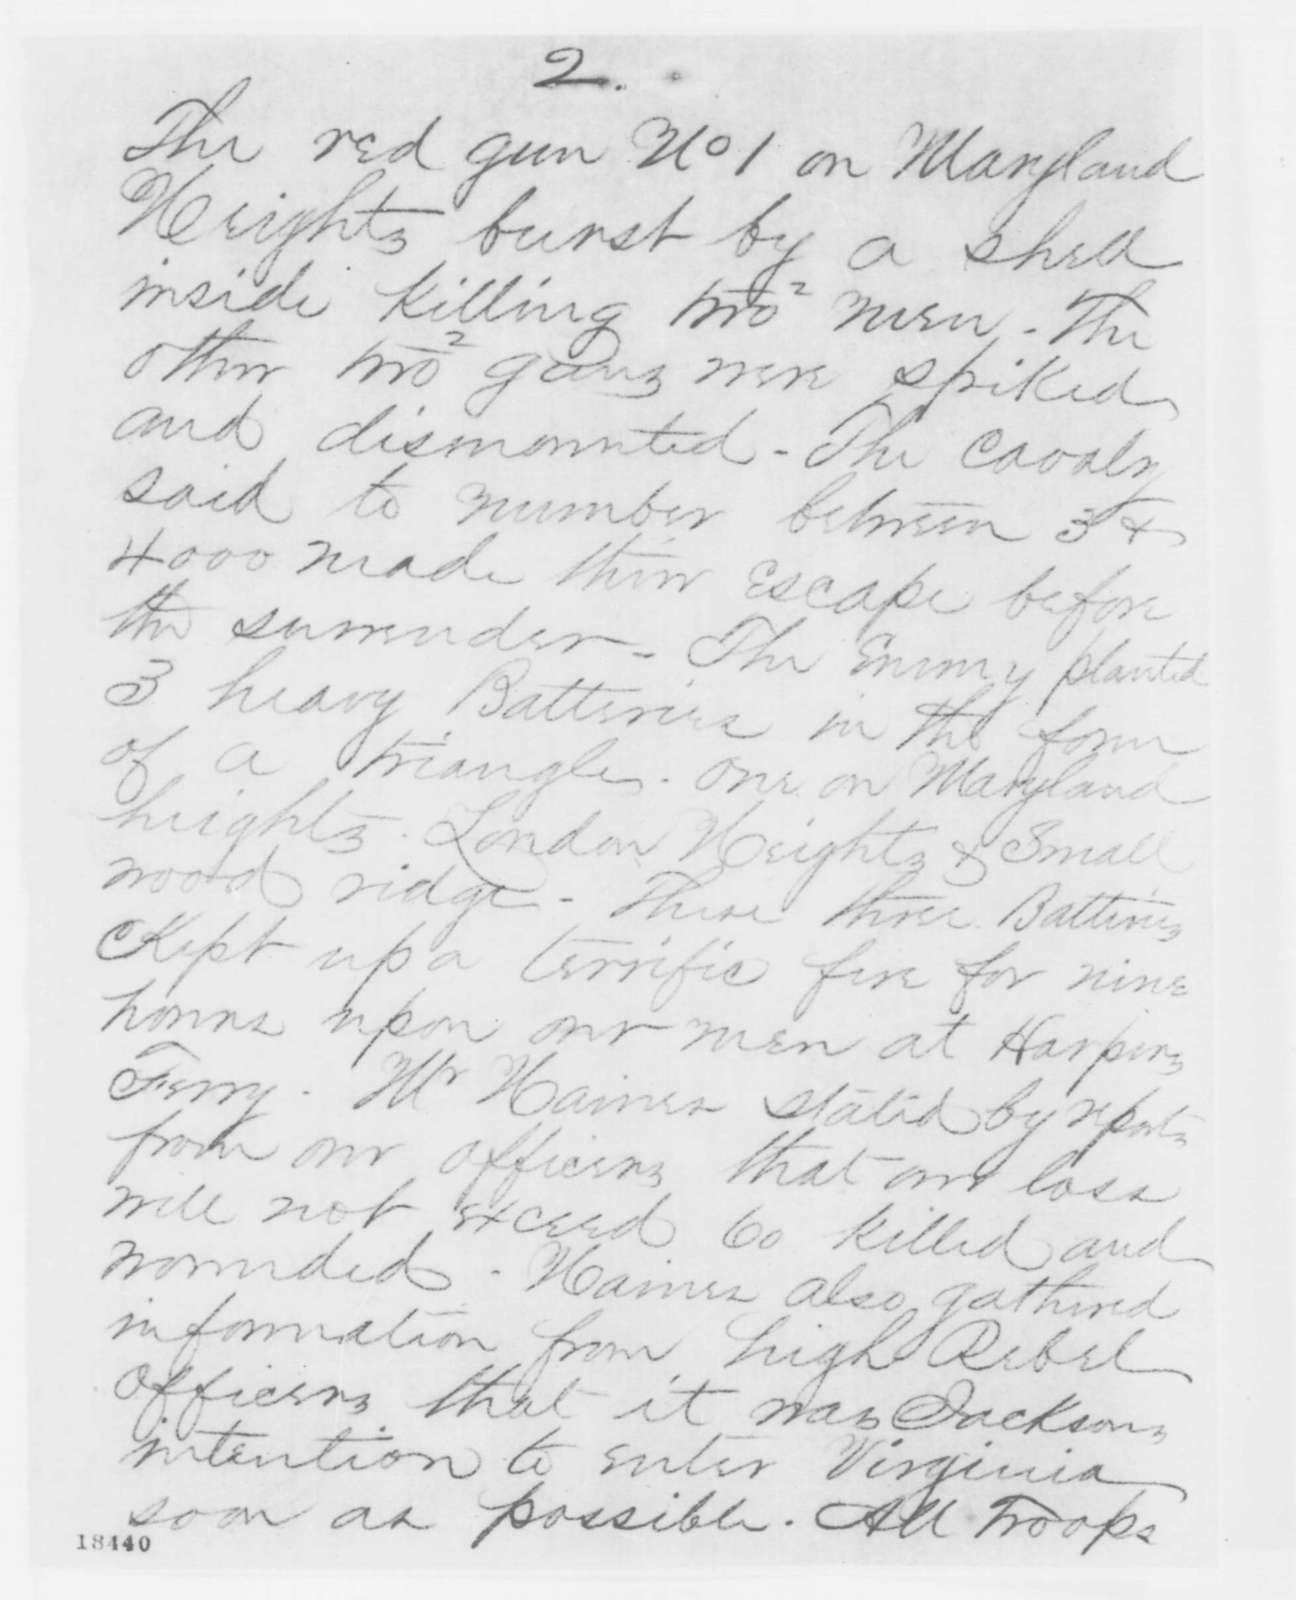 Conway and Hall to Thomas T. Eckert and Anson Stager, Tuesday, September 16, 1862  (Telegram concerning military affairs)